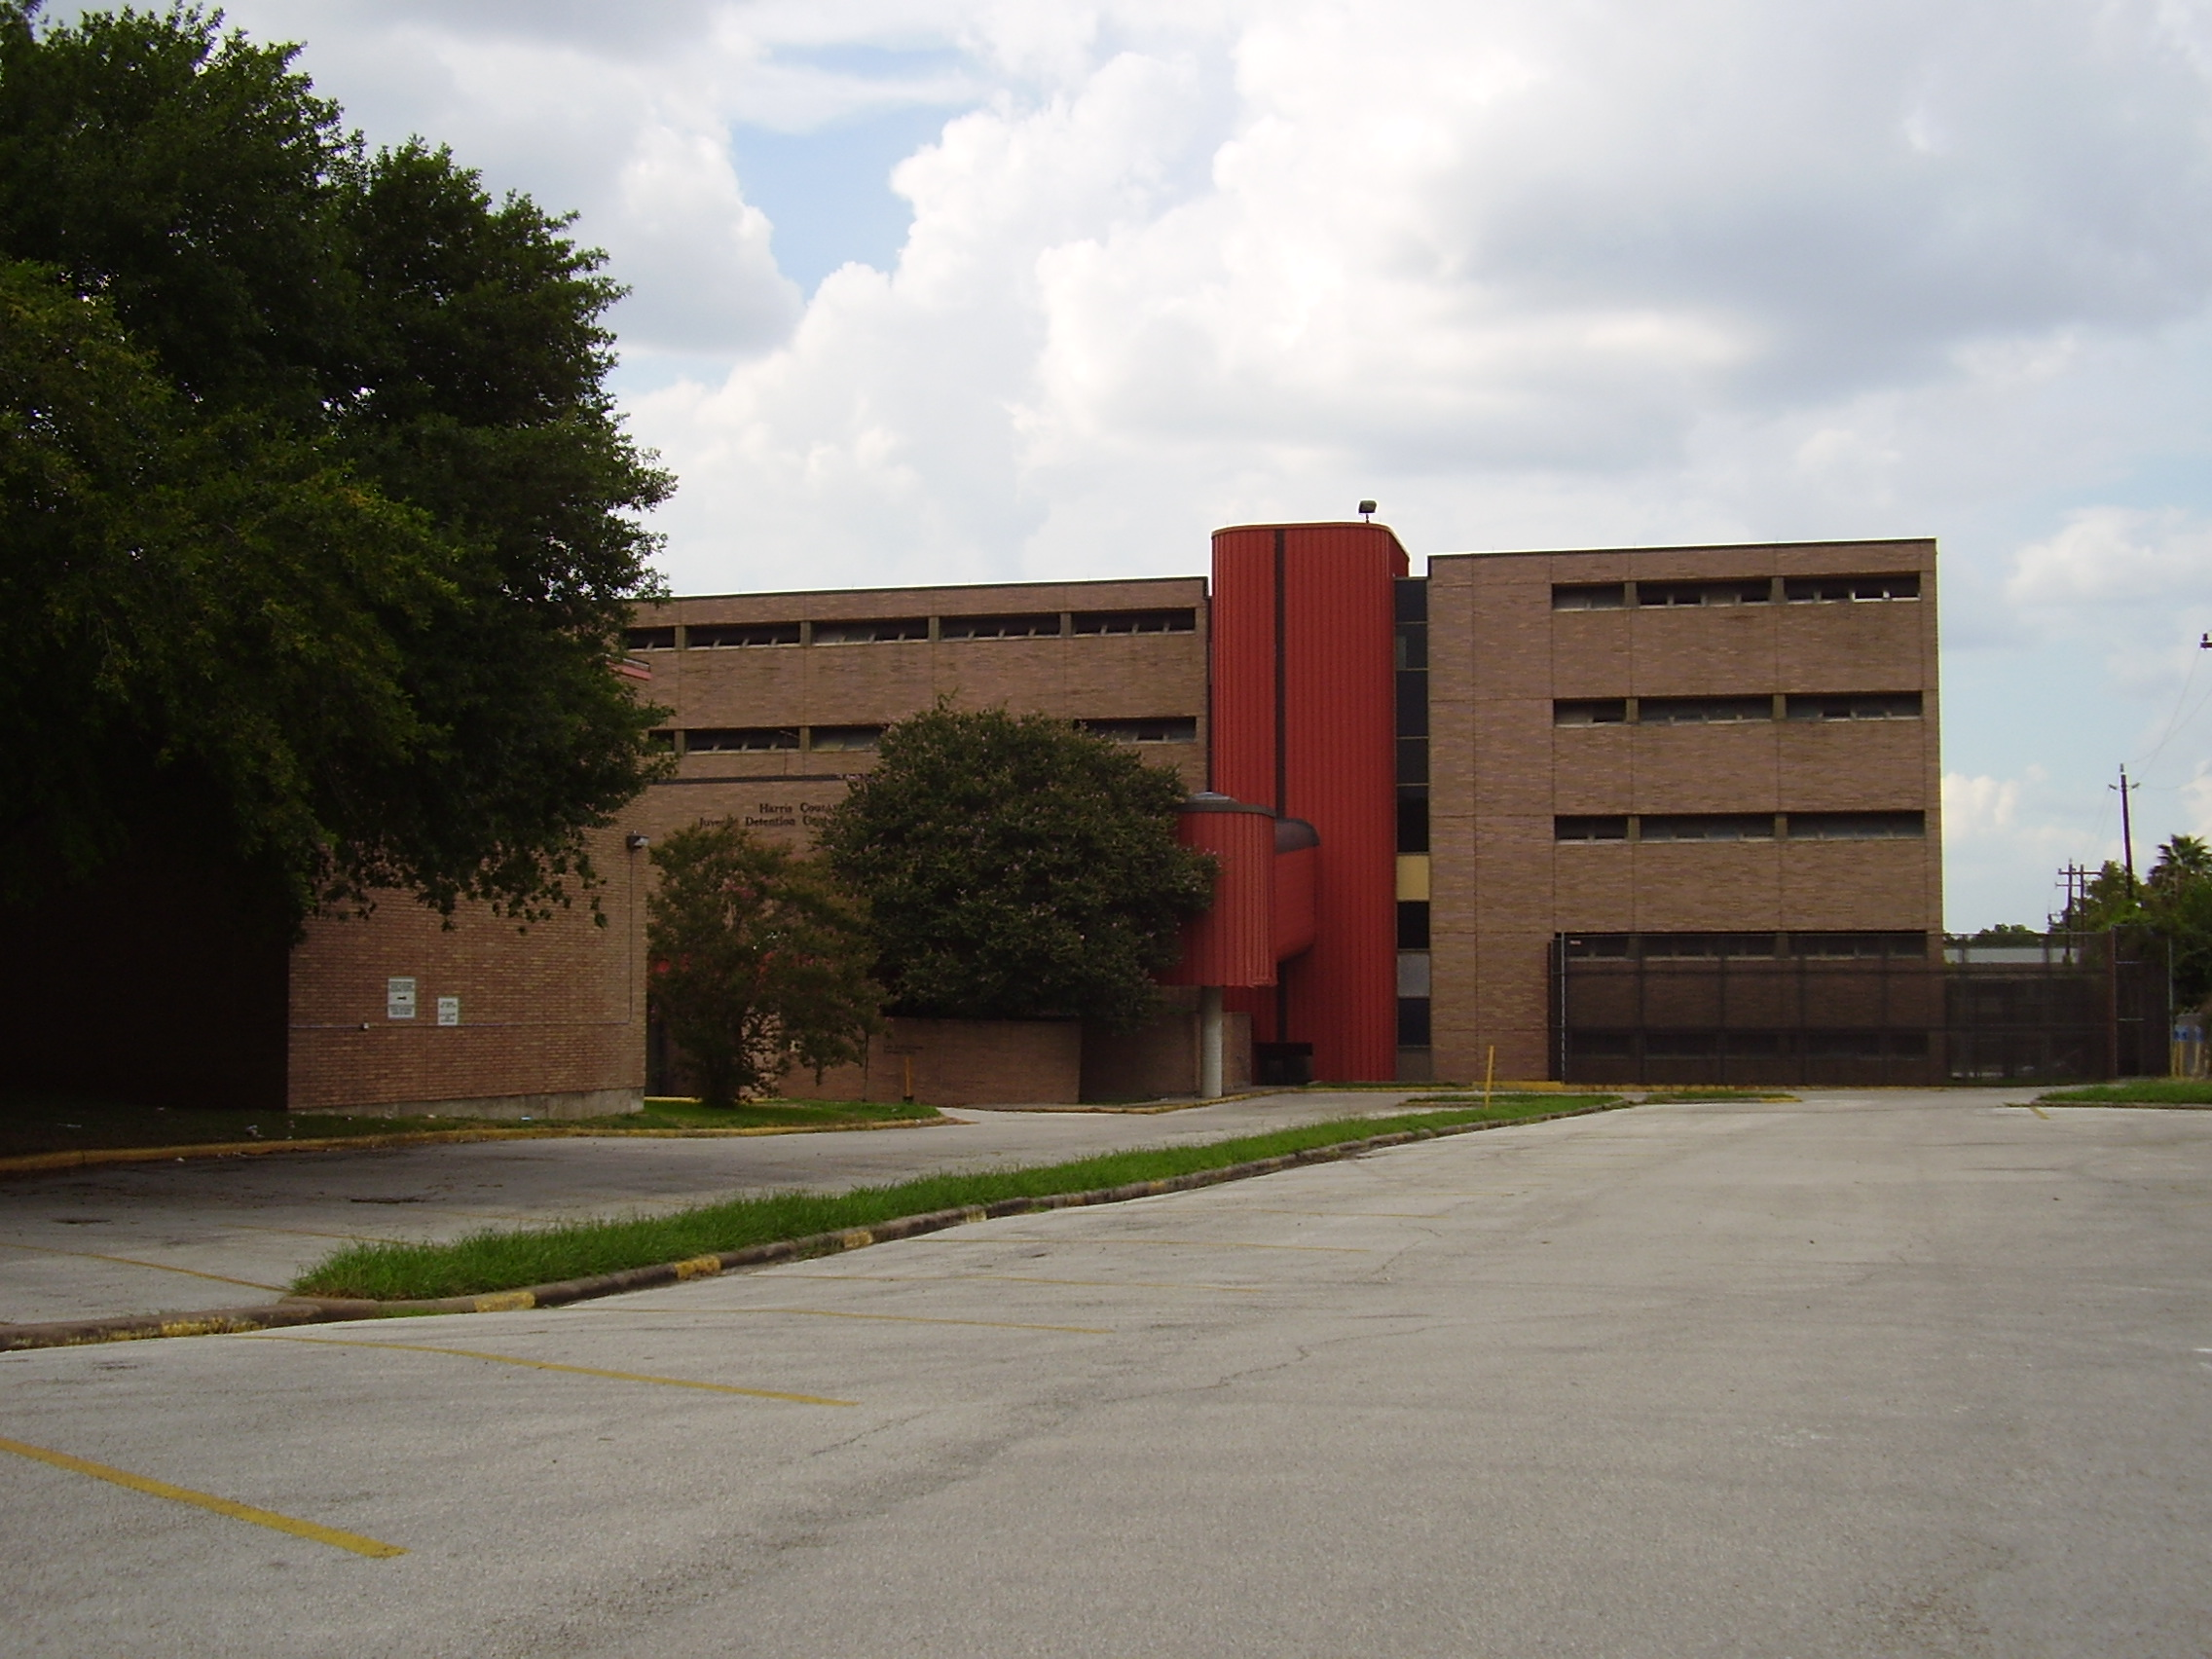 Youth detention center - Wikipedia